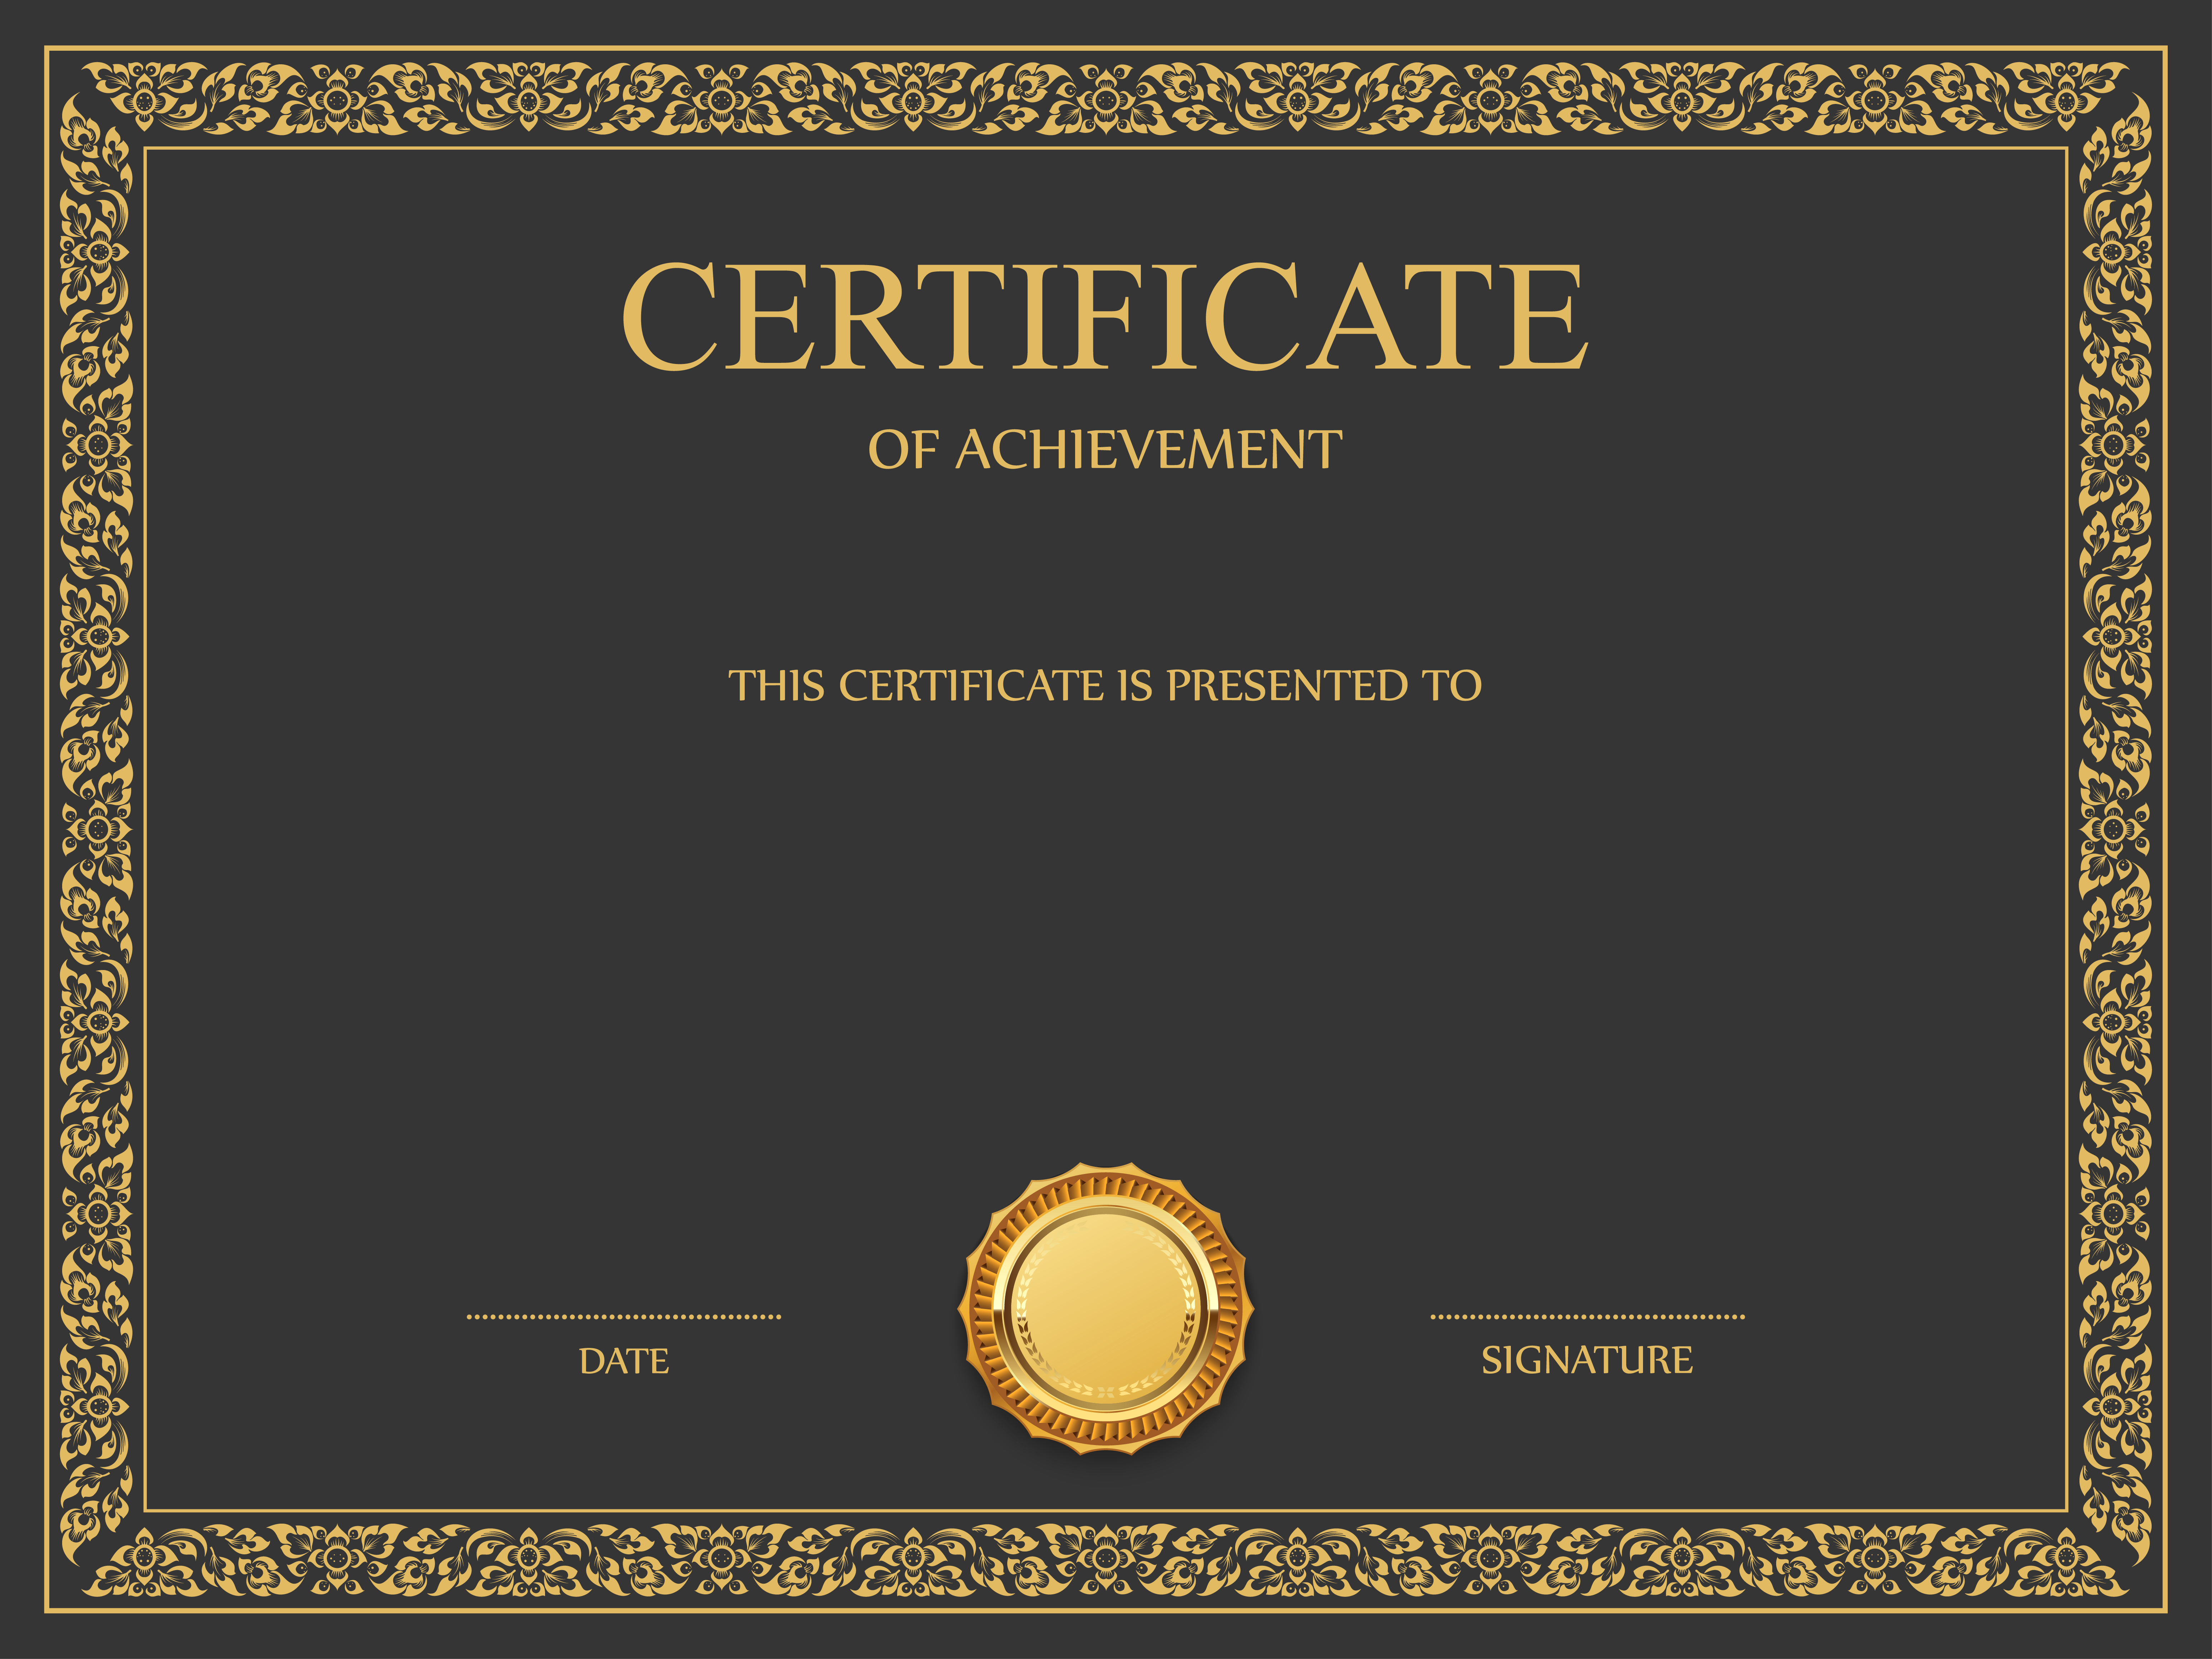 Certificate Template Png Image Purepng Free